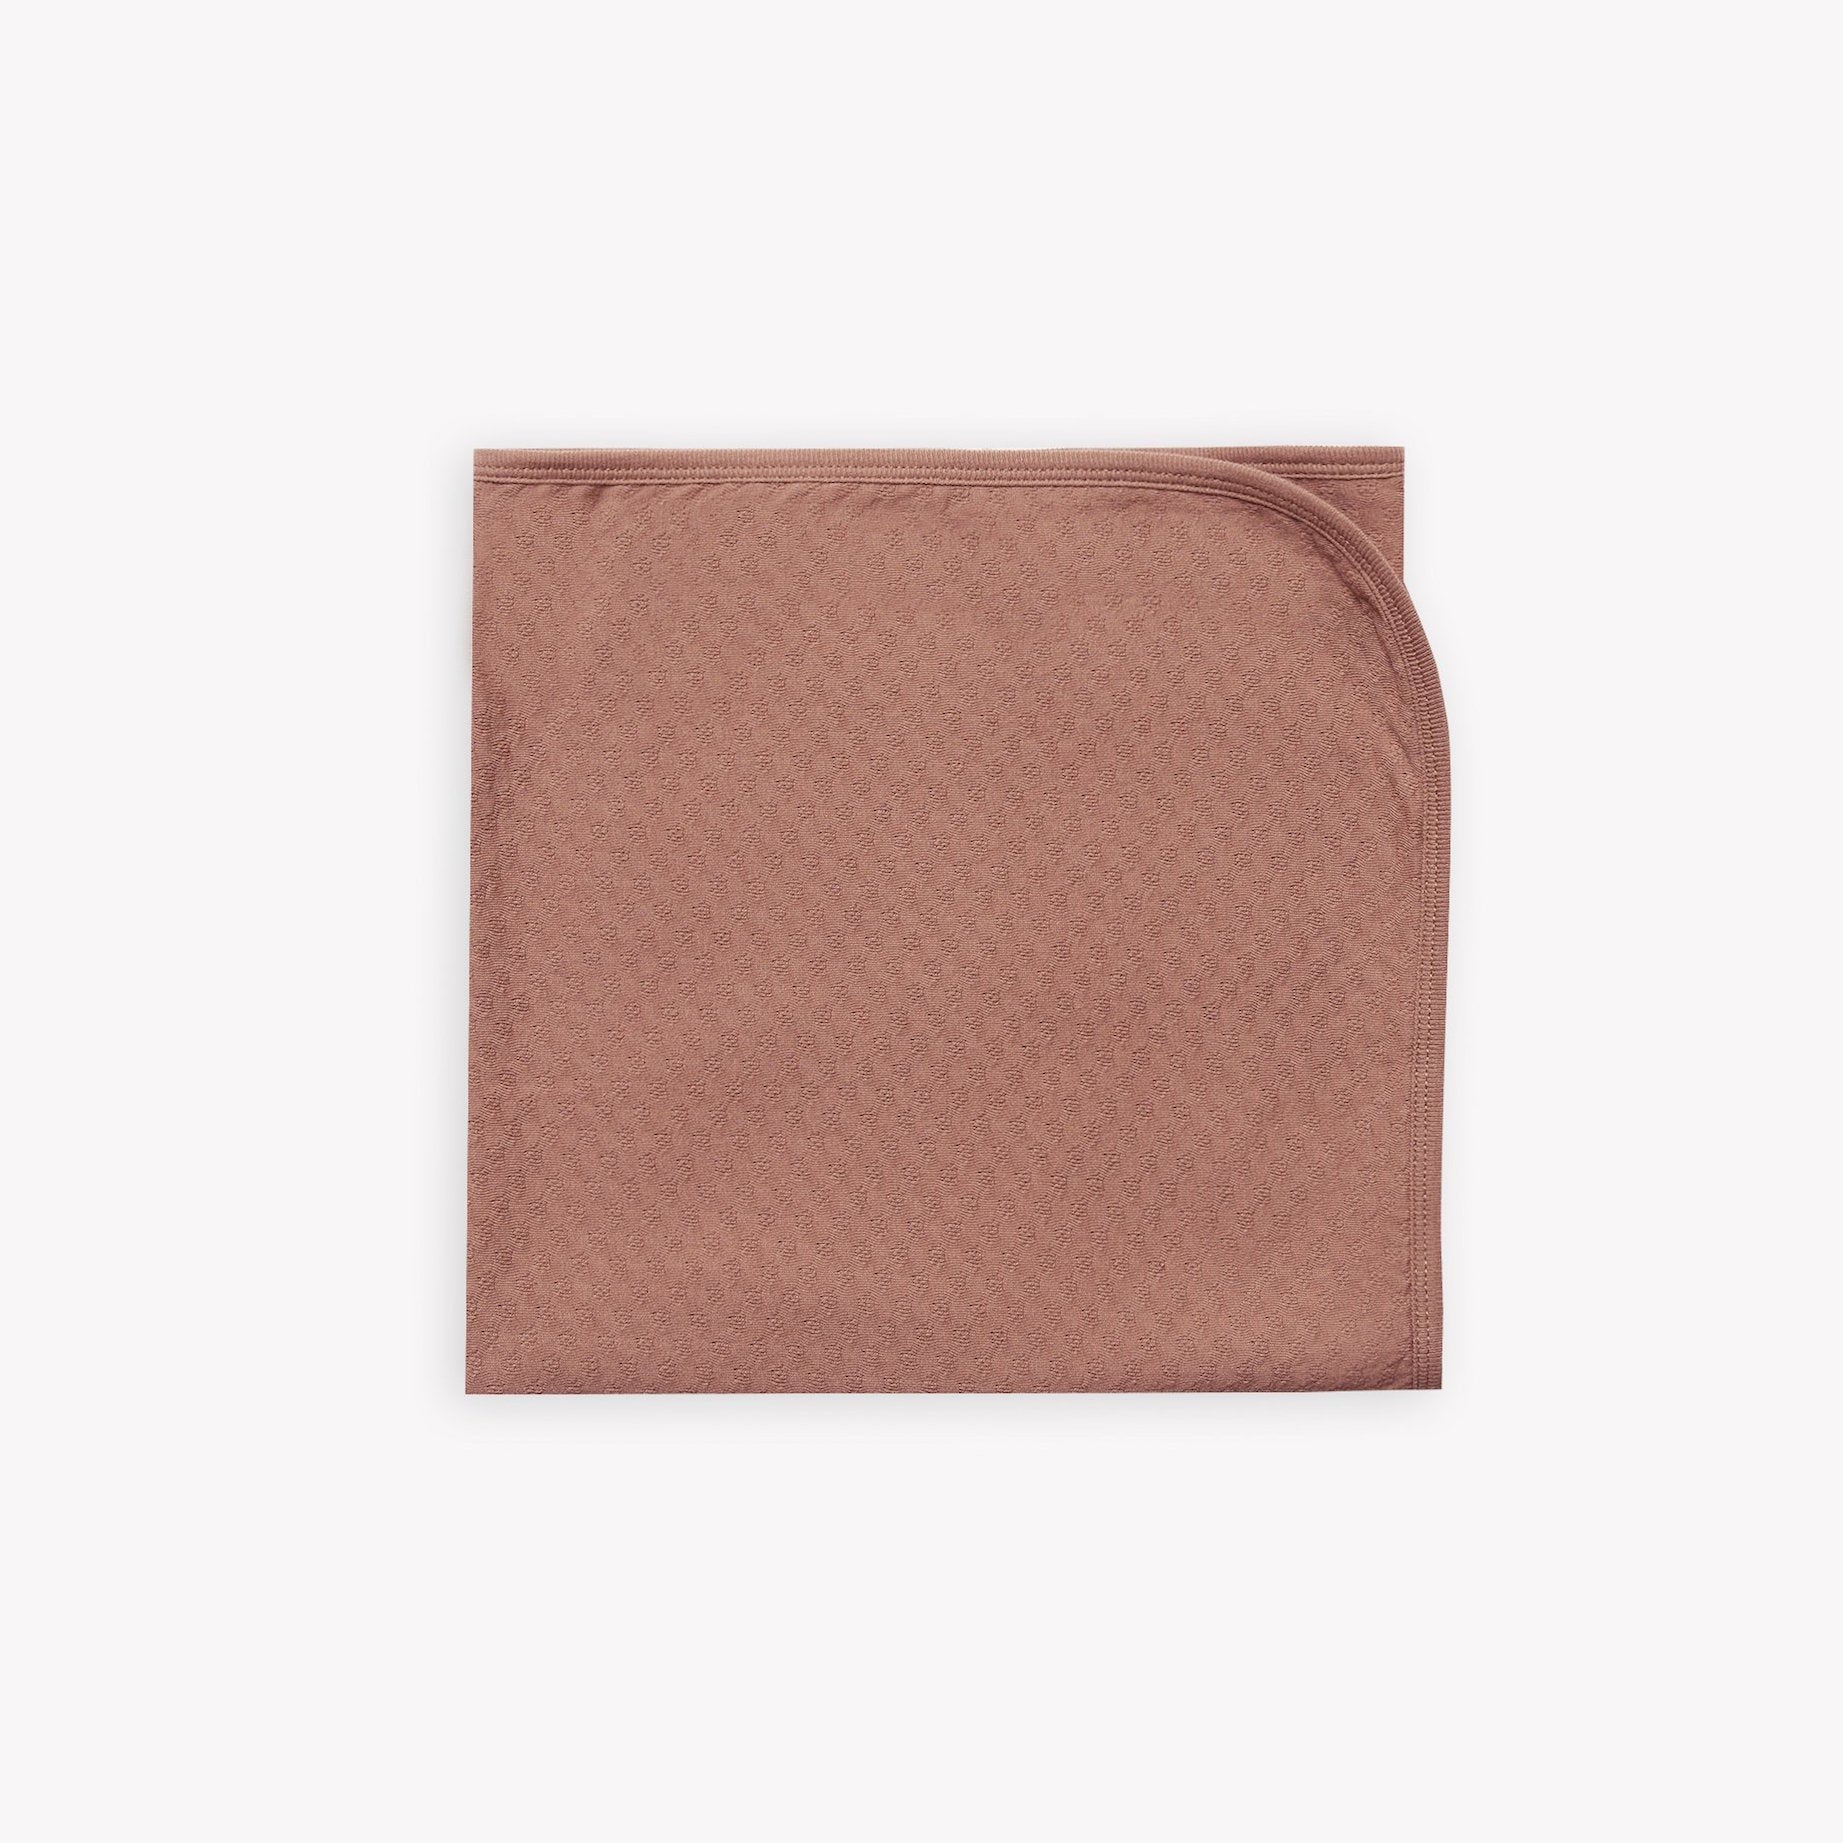 Quincy Mae organic cotton pointelle baby blanket - clay